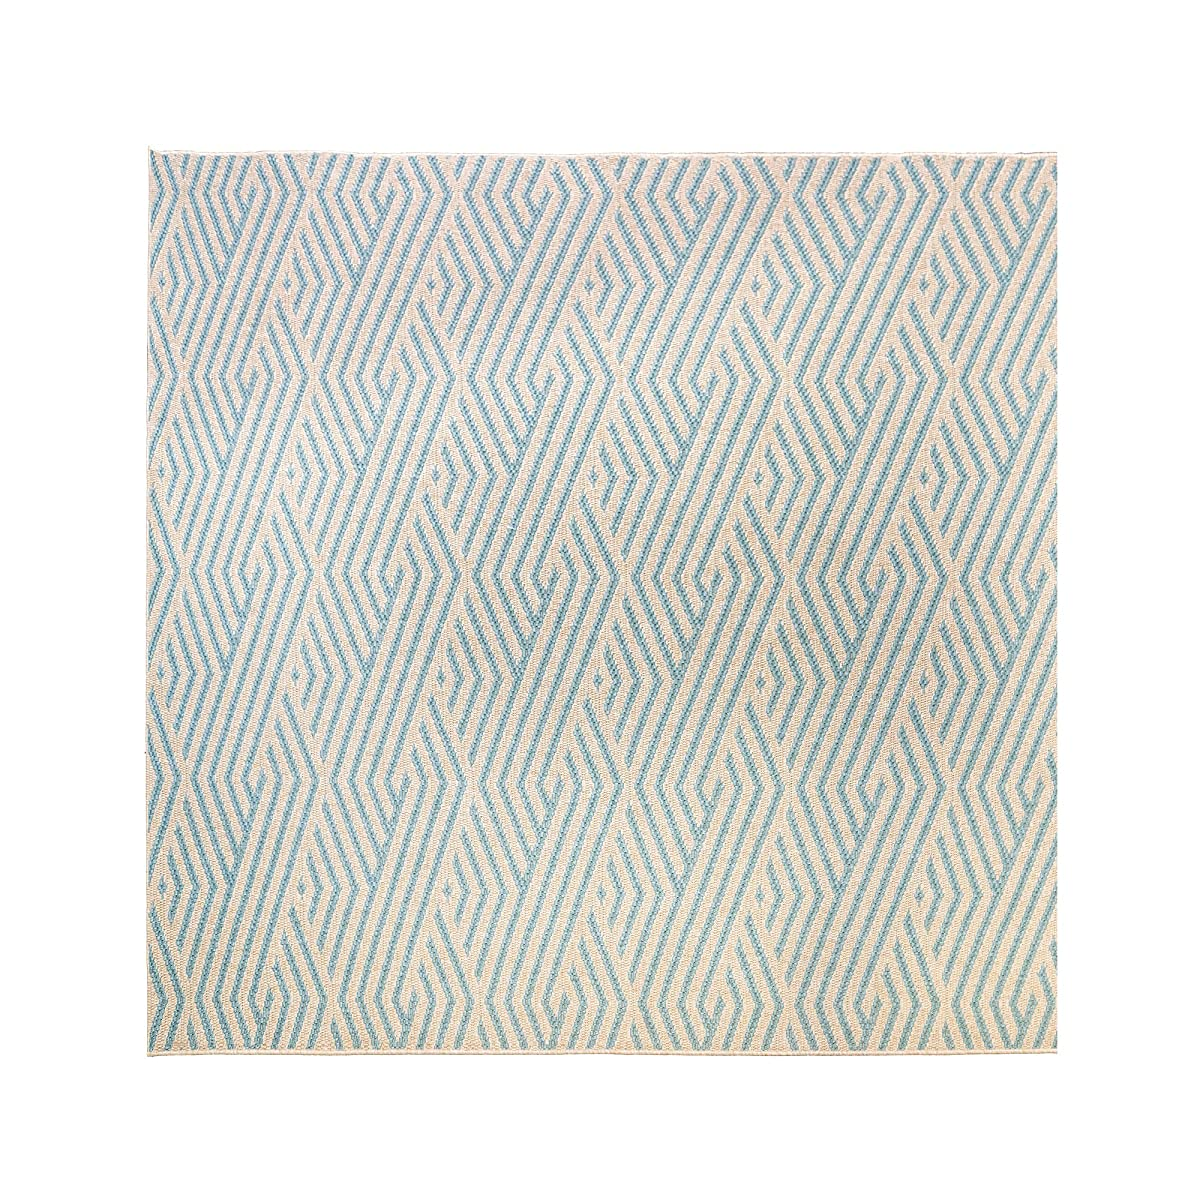 Gertmenian Platinum Seneca Modern Outdoor Furniture Rug, 9x9 Square, Gold Aqua Blue